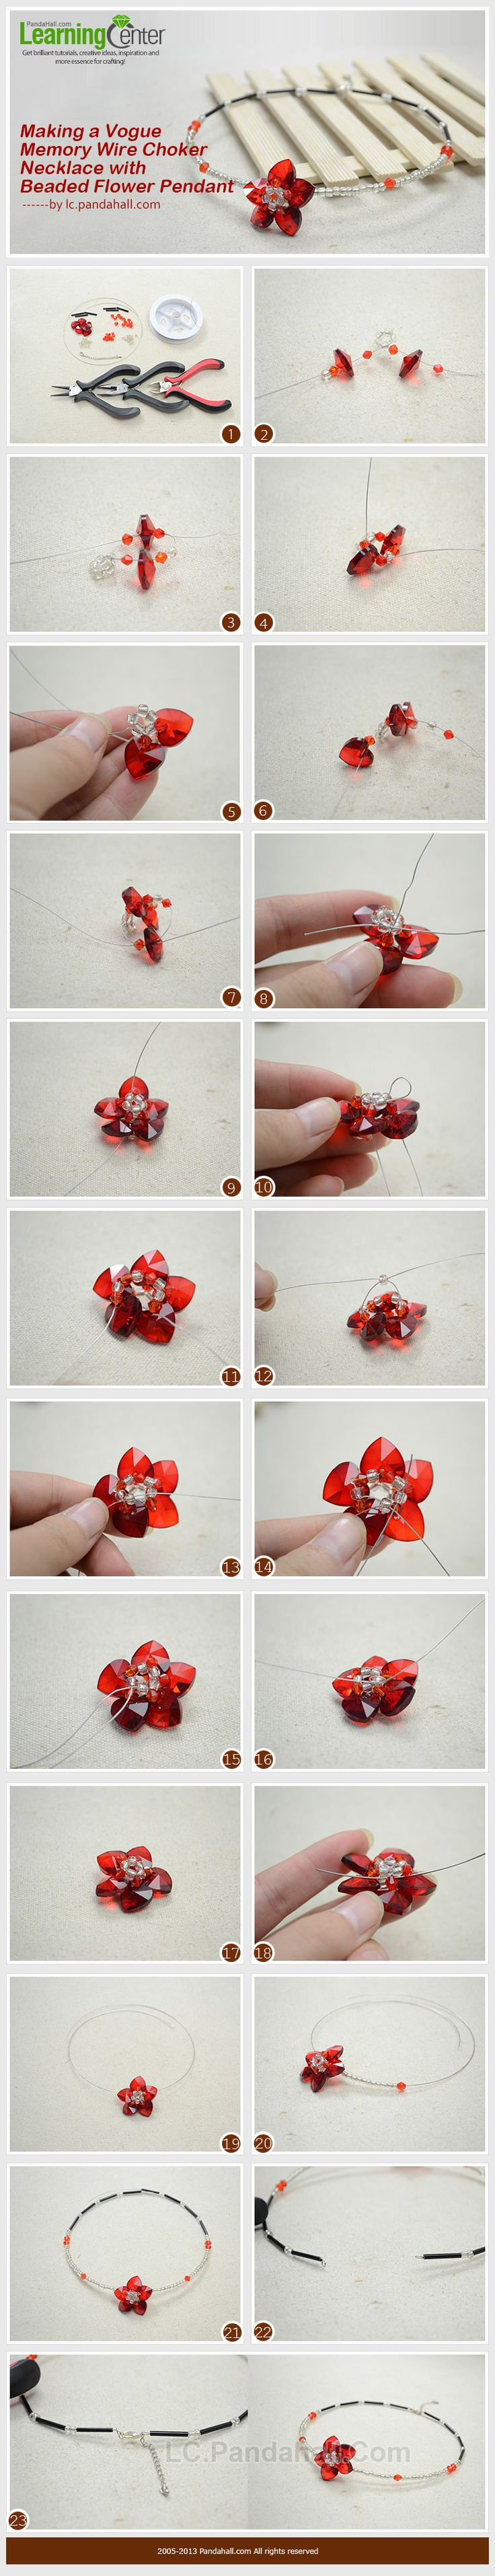 553 best wire with findings & beads images on Pinterest | Jewelry ...